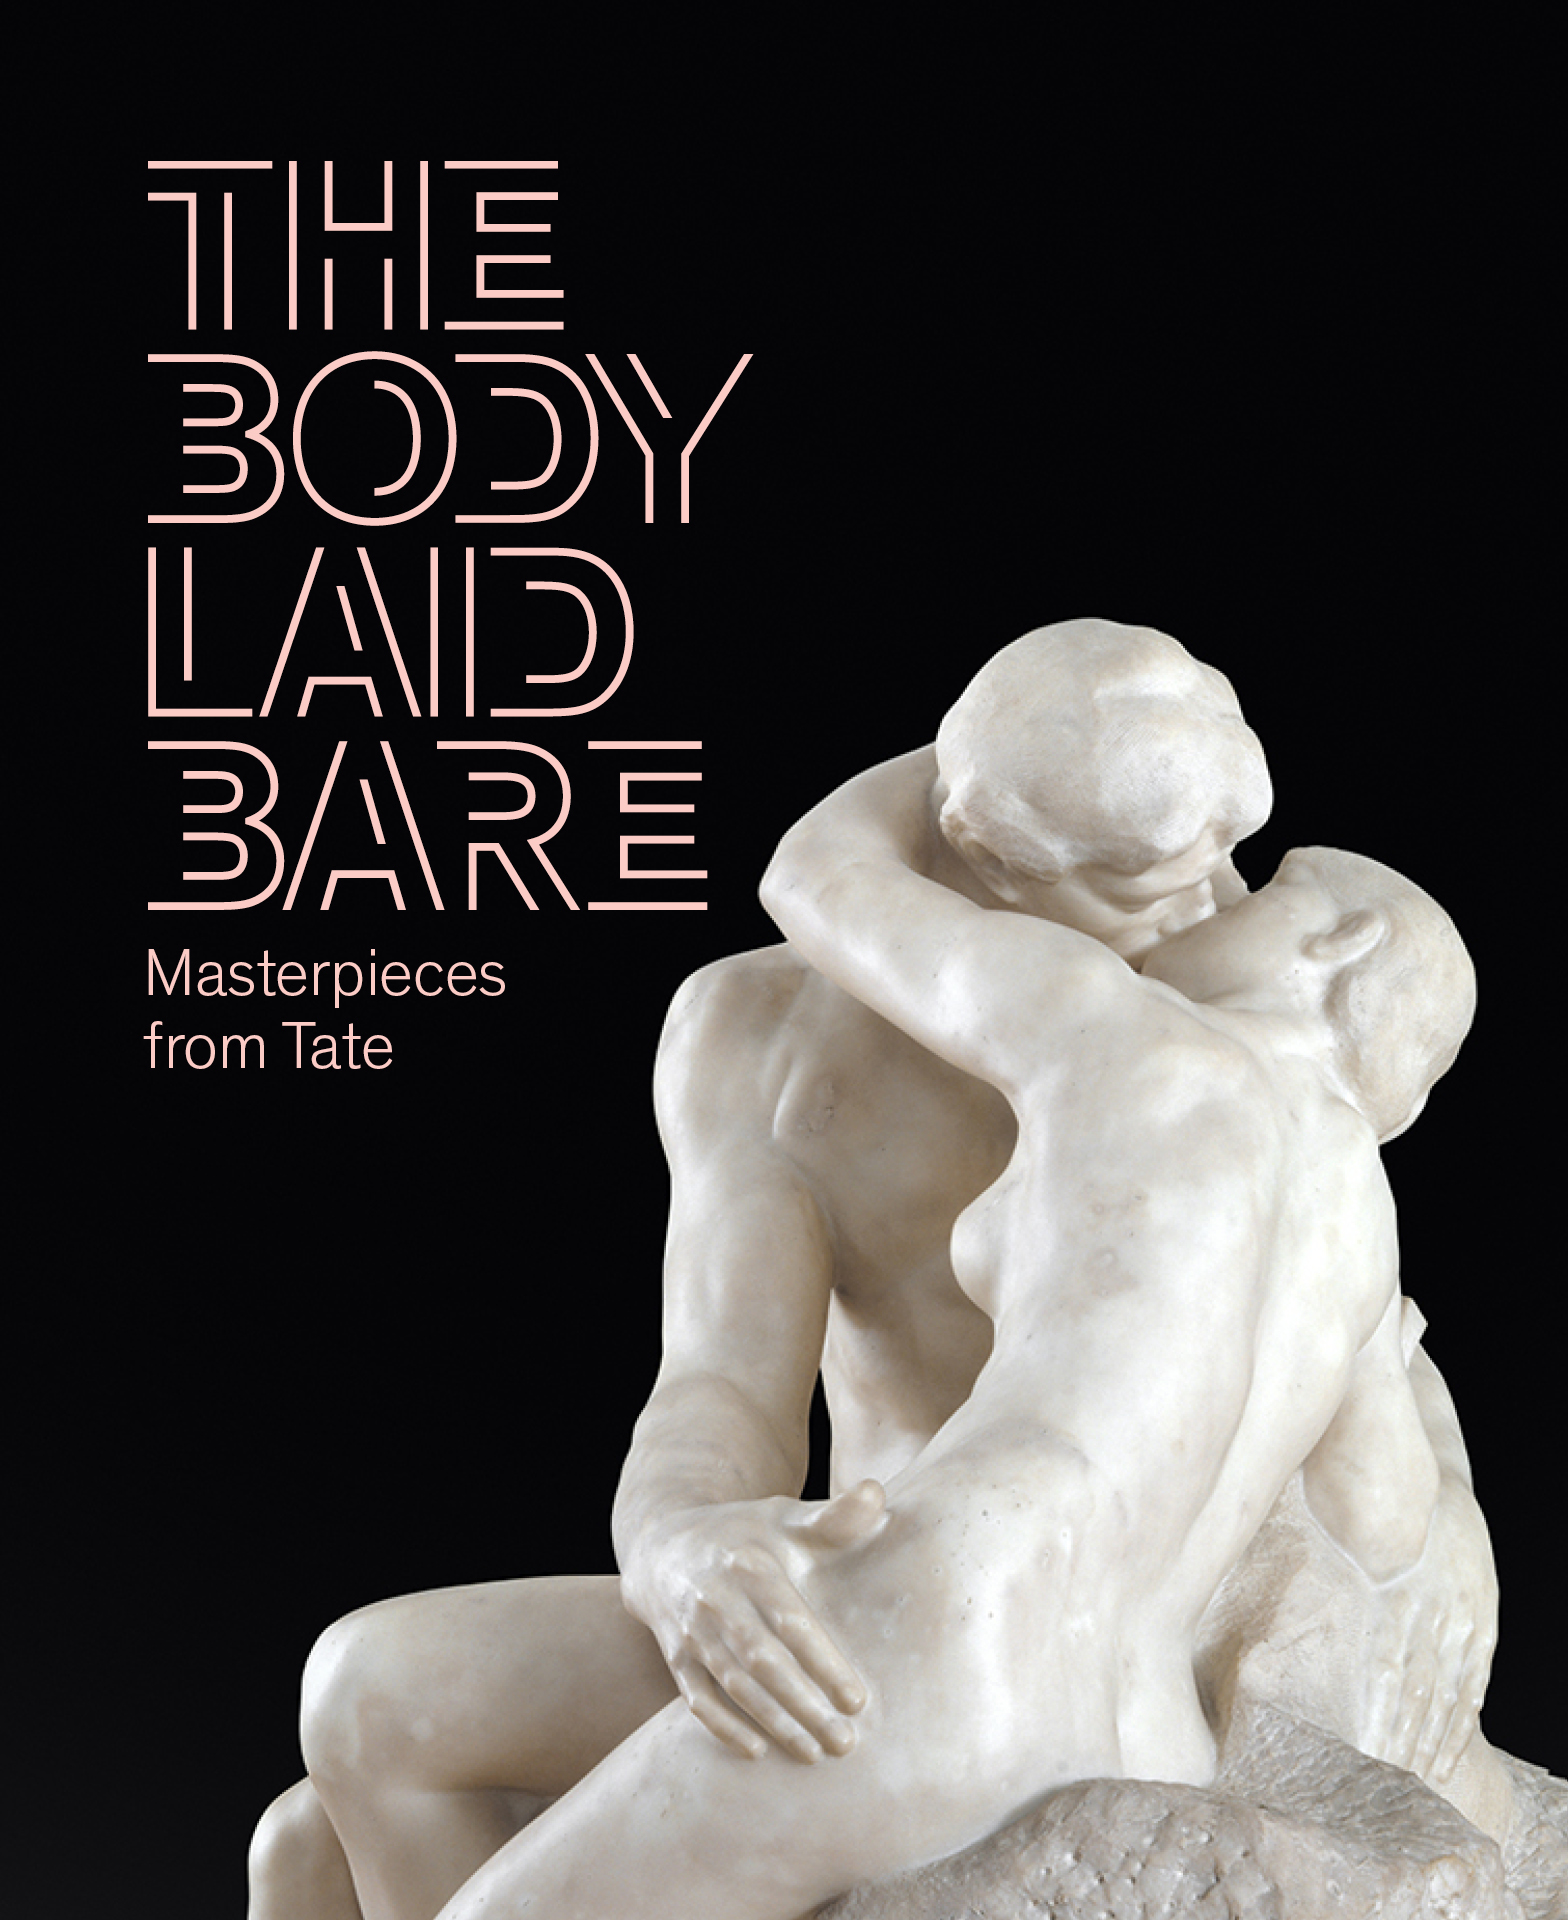 The Body Laid Bare: Masterpieces from Tate